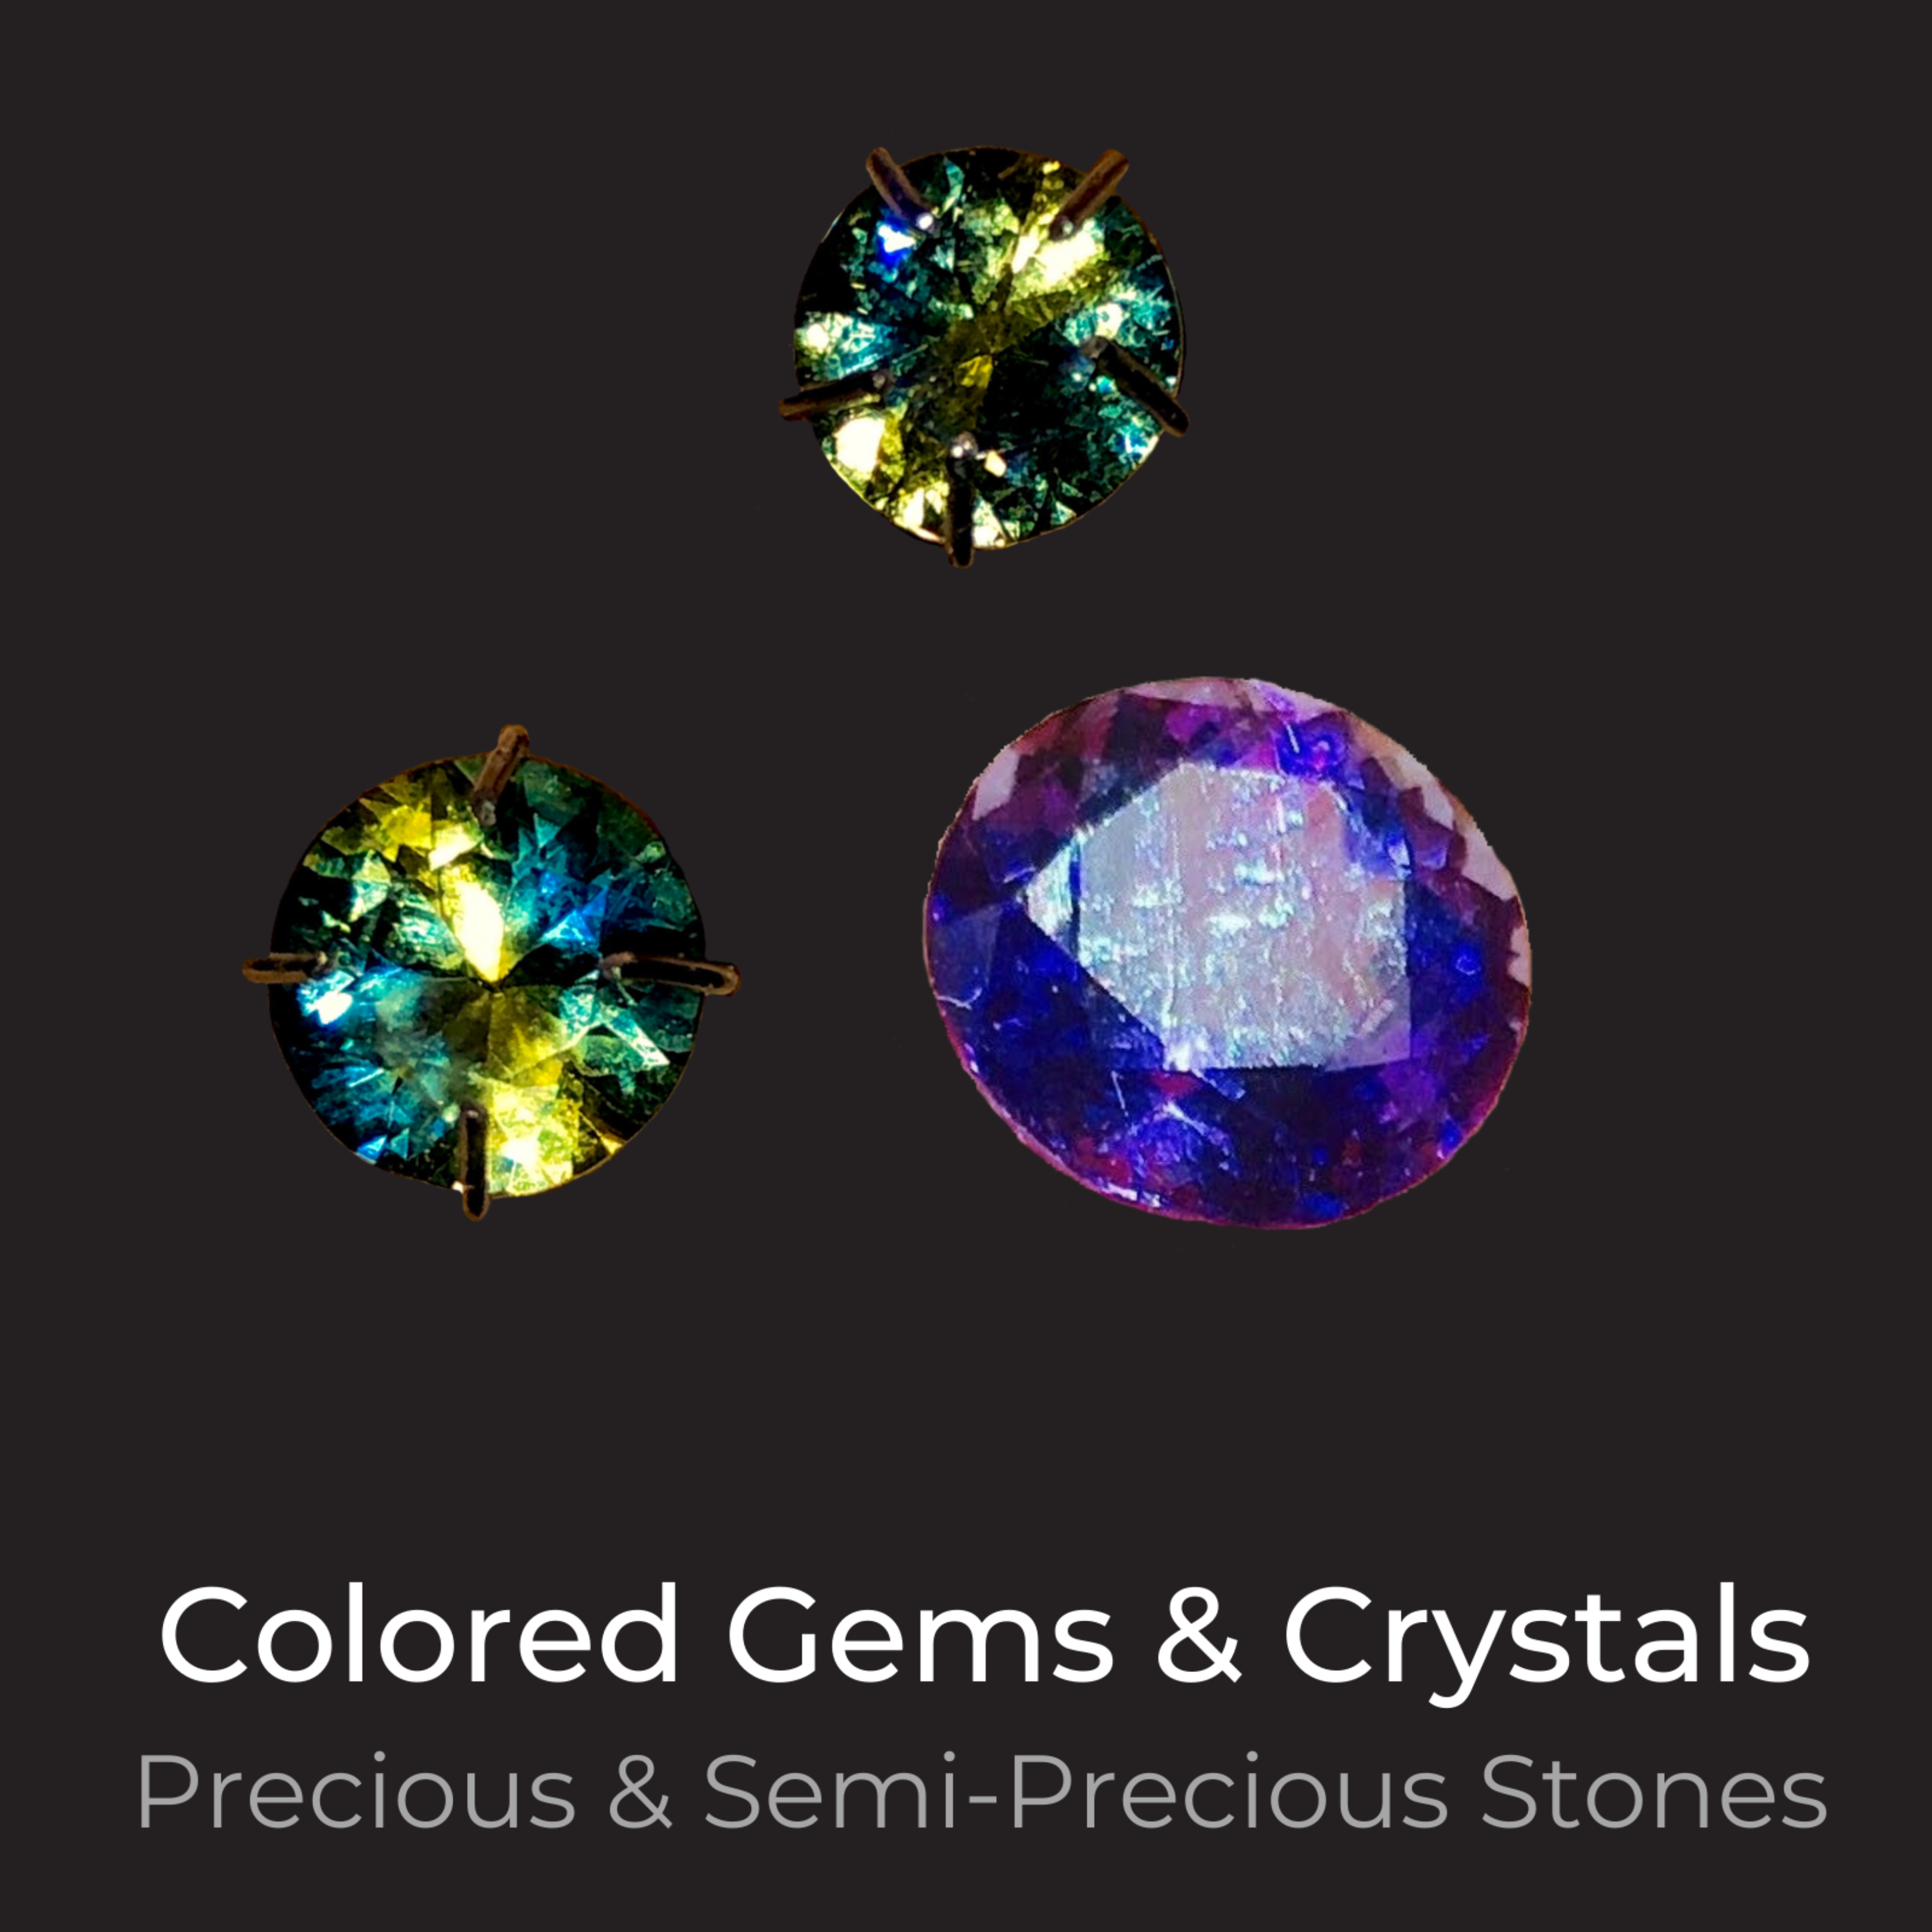 • Colored Gems & Crystals